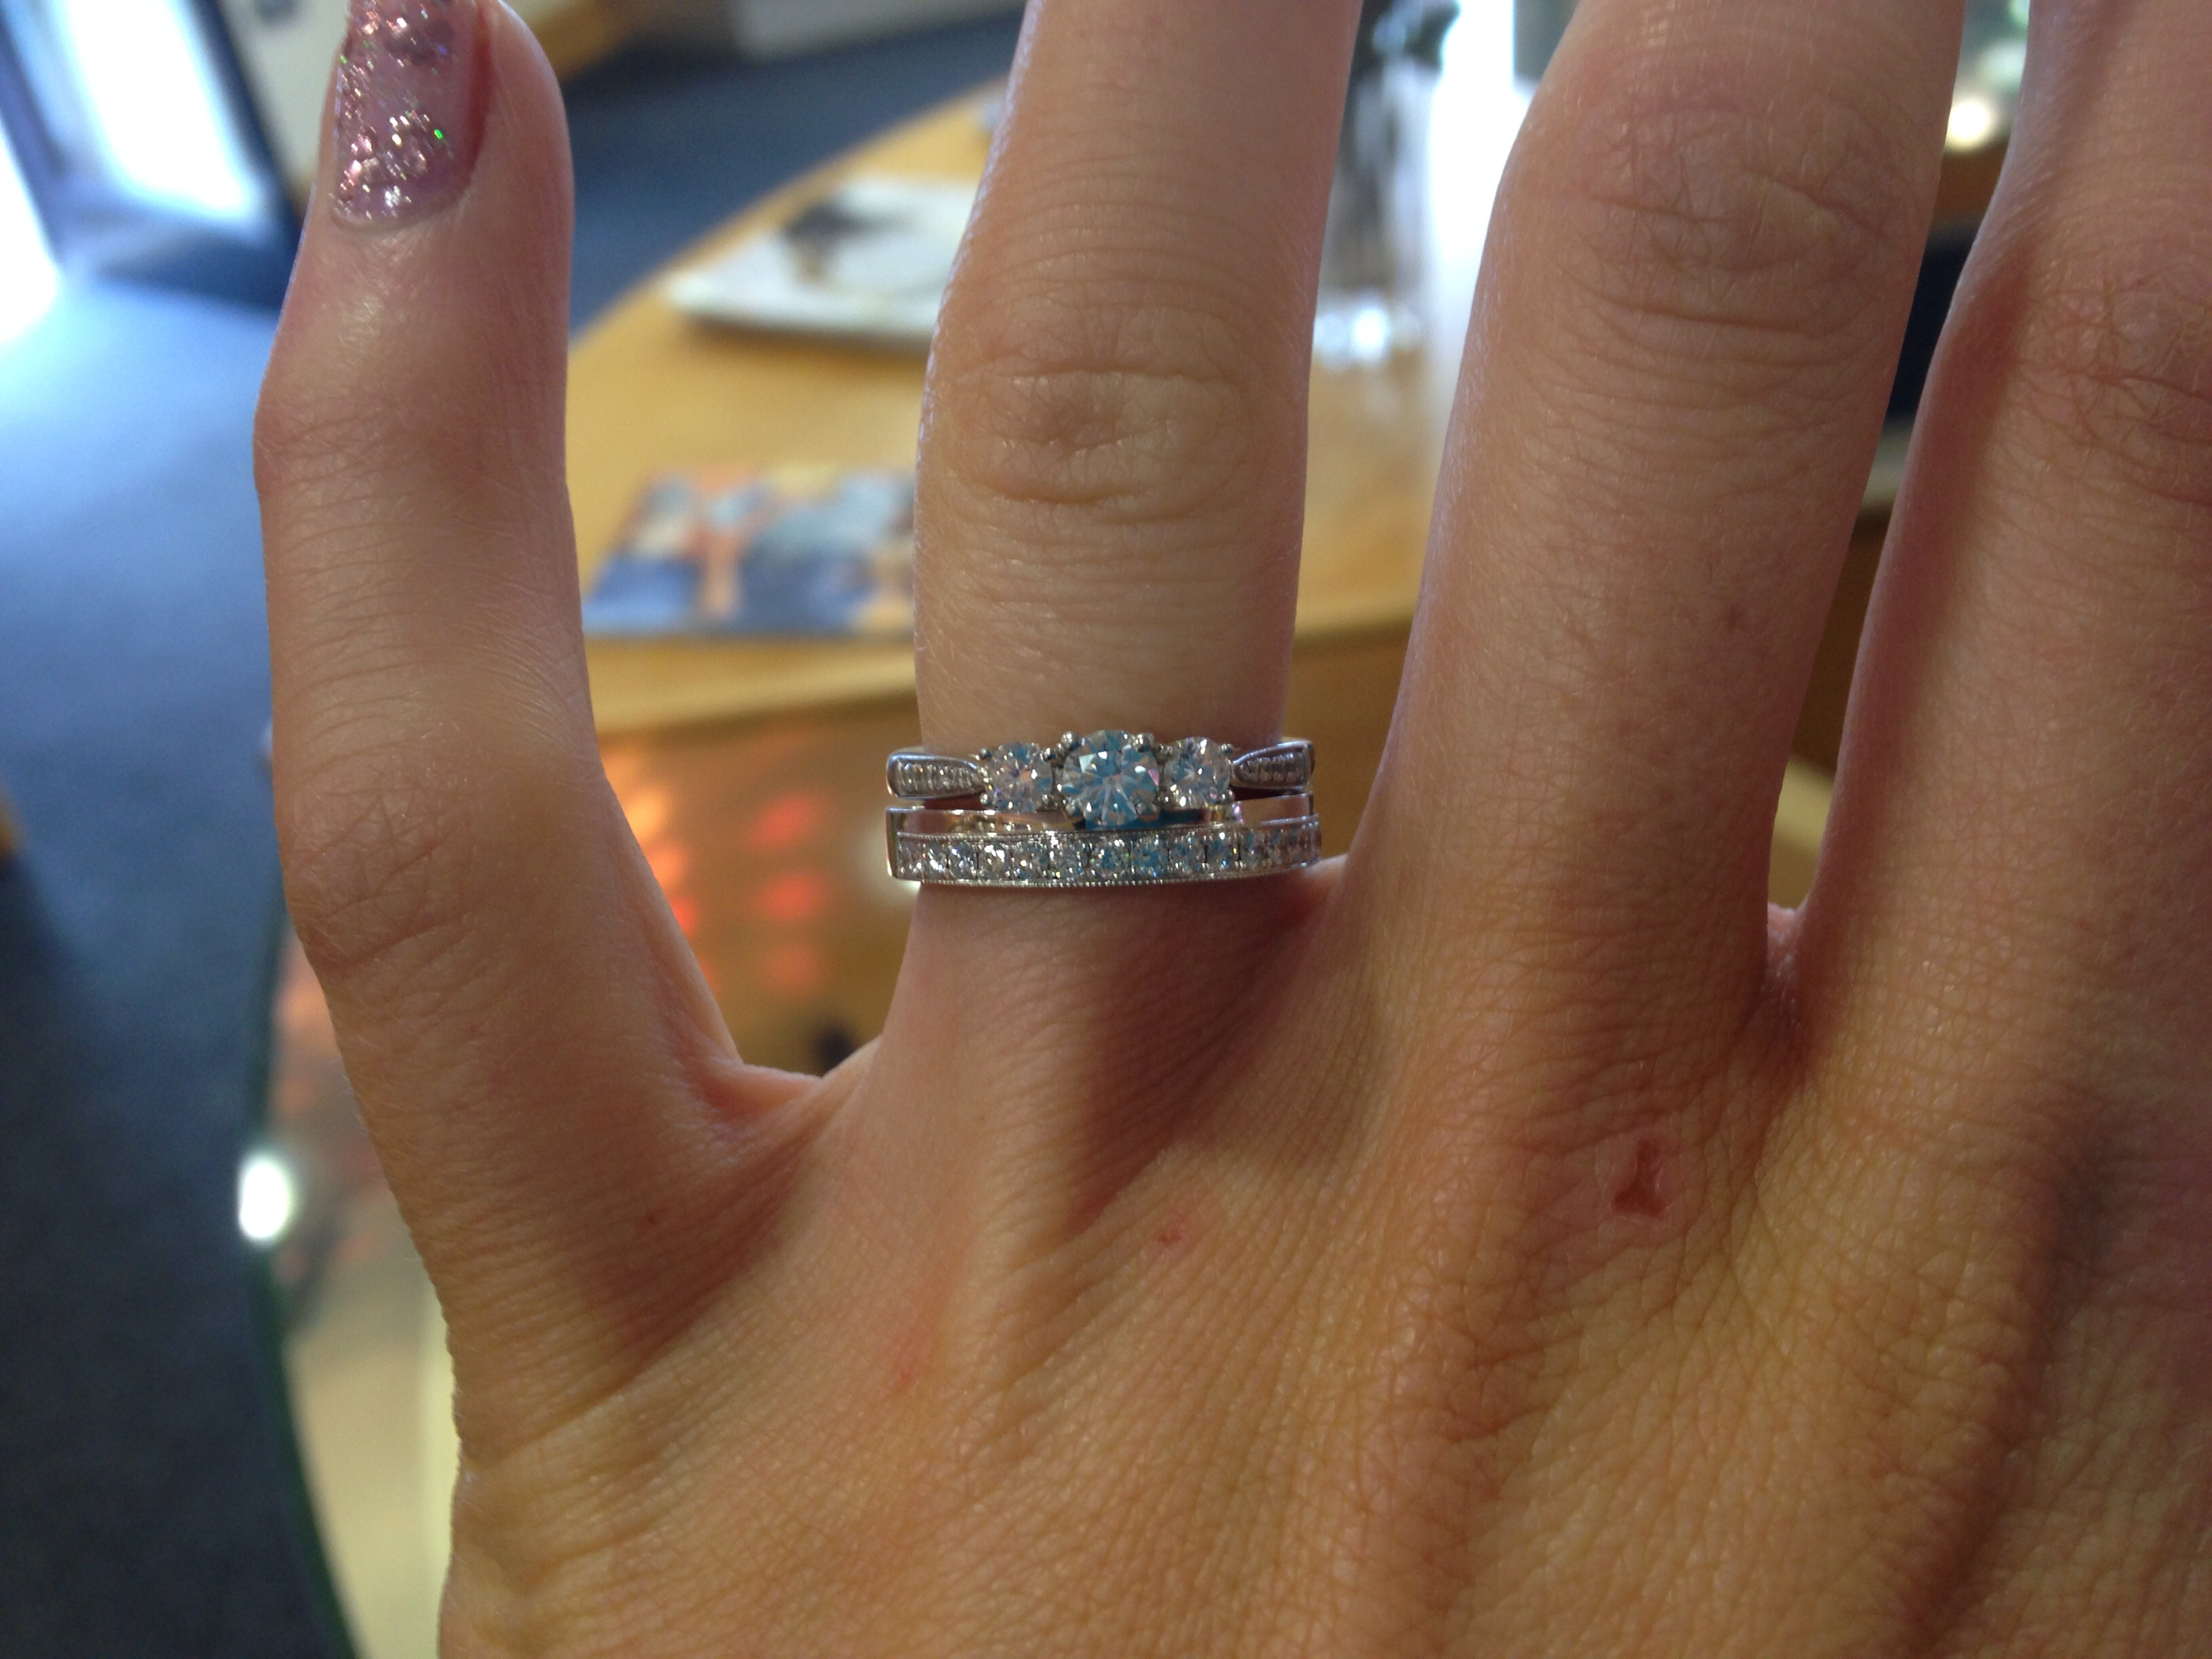 More wedding ring shopping Do you think this ring is too chunky